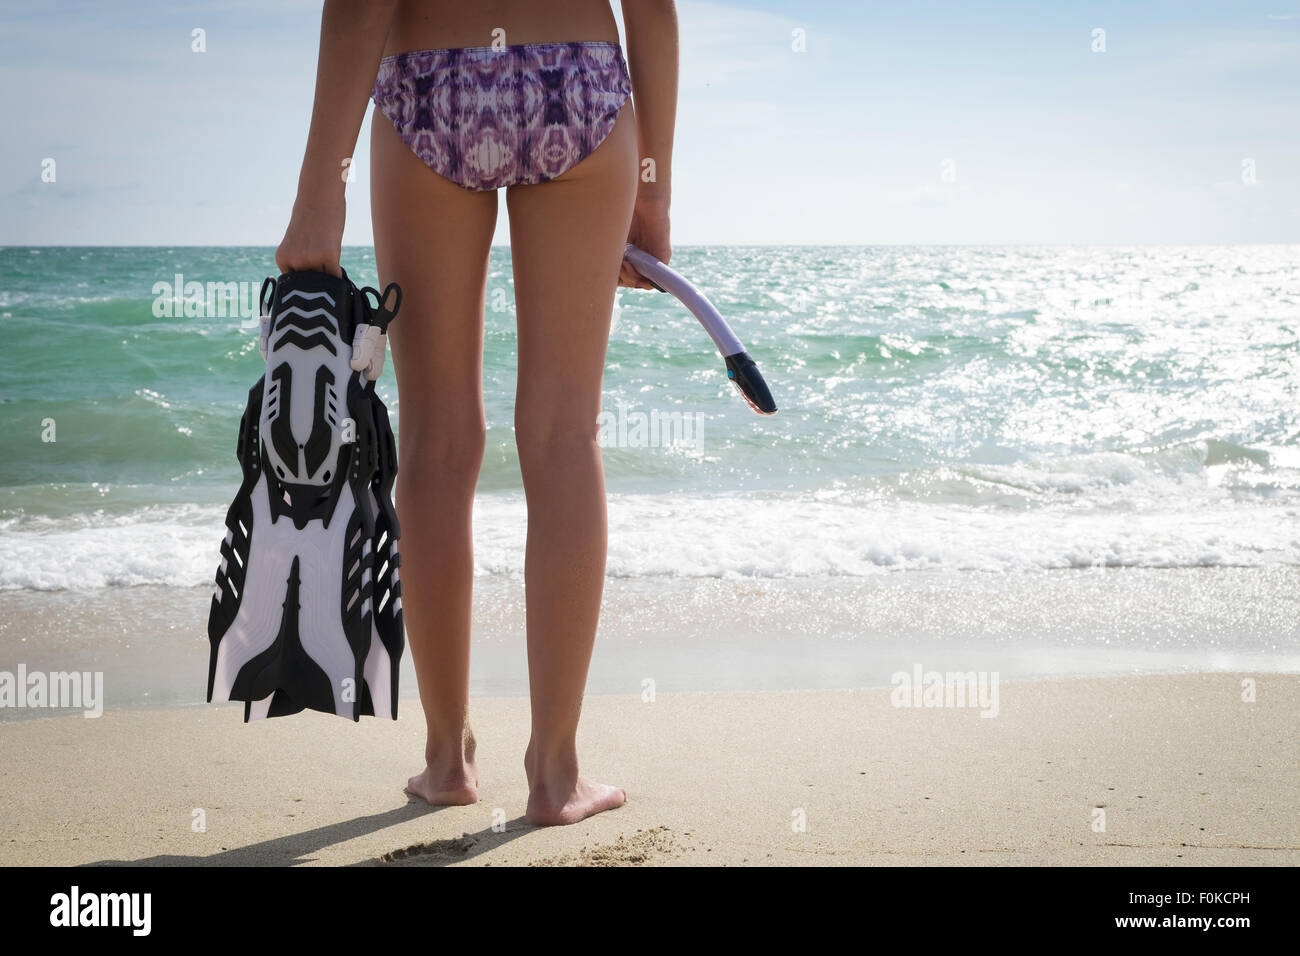 Mexico, Nayarit, teenage girl with snorkel and fins standing in front of the ocean - Stock Image